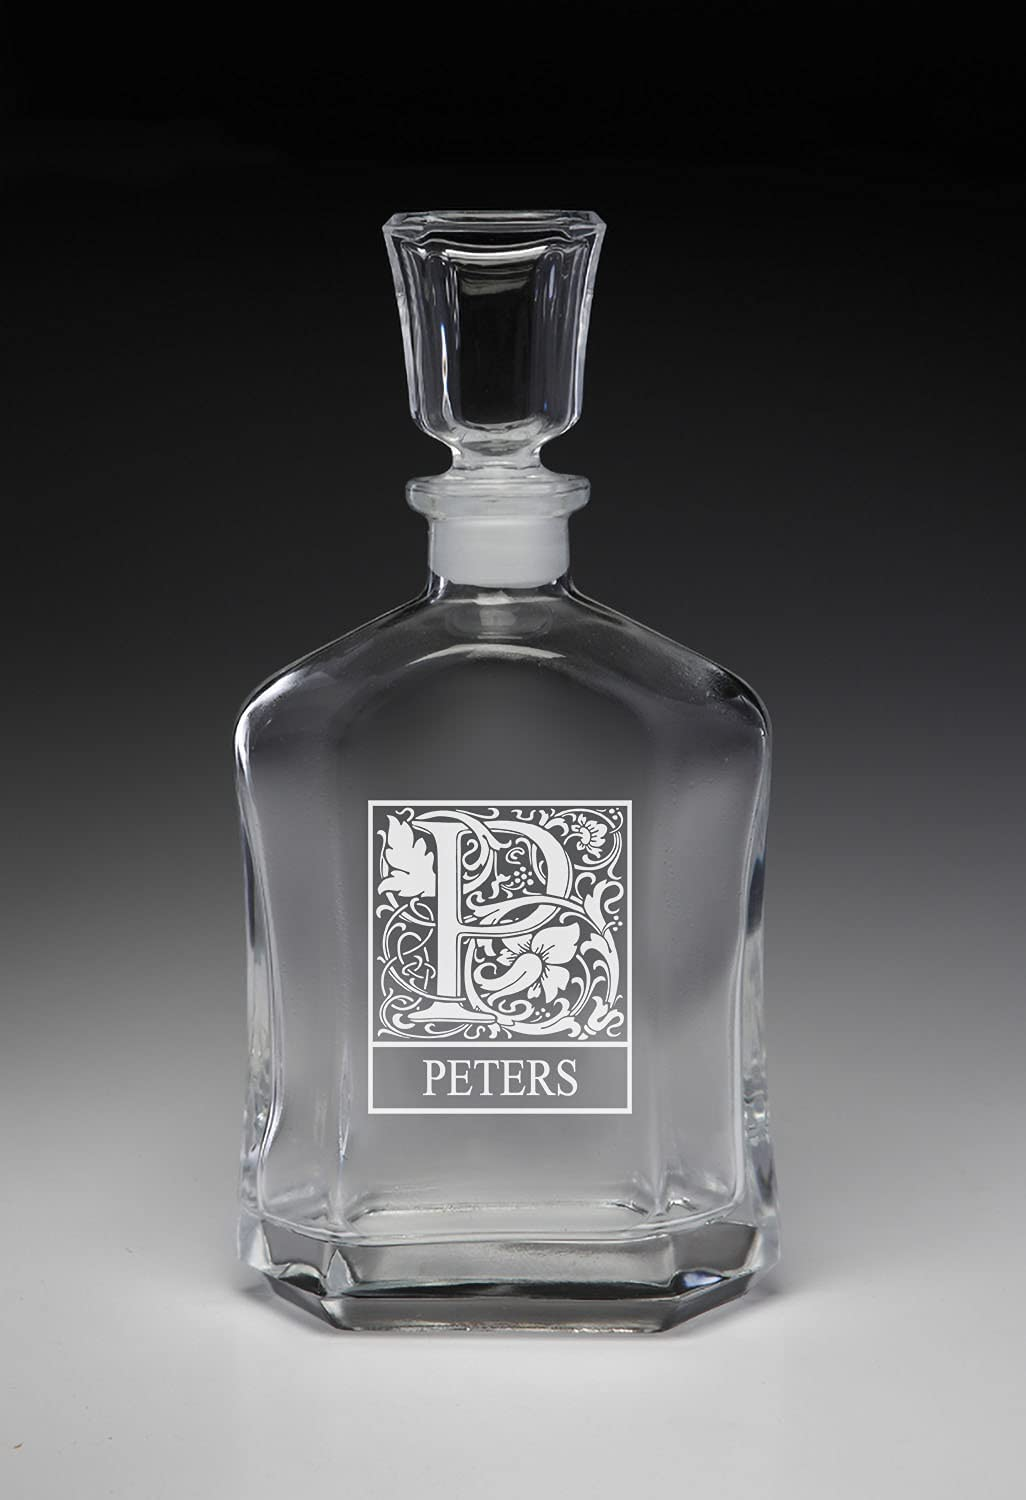 Peters Our shop OFFers the best service Personalized Arlington Mall Initial Decanter Whiskey